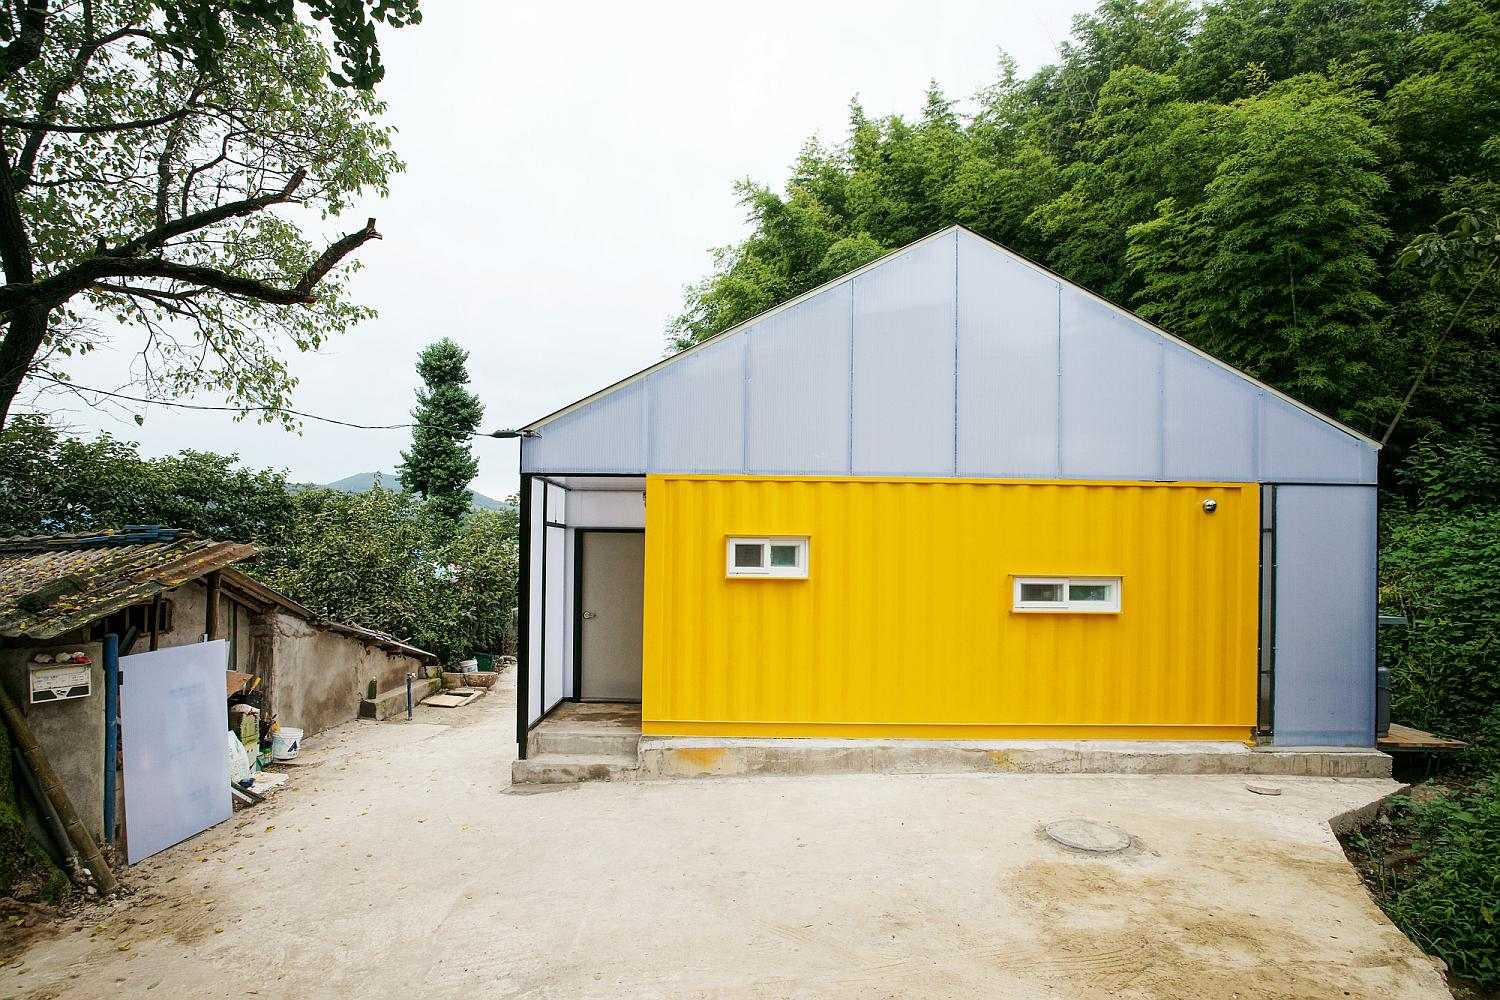 This low cost shipping container house is covered